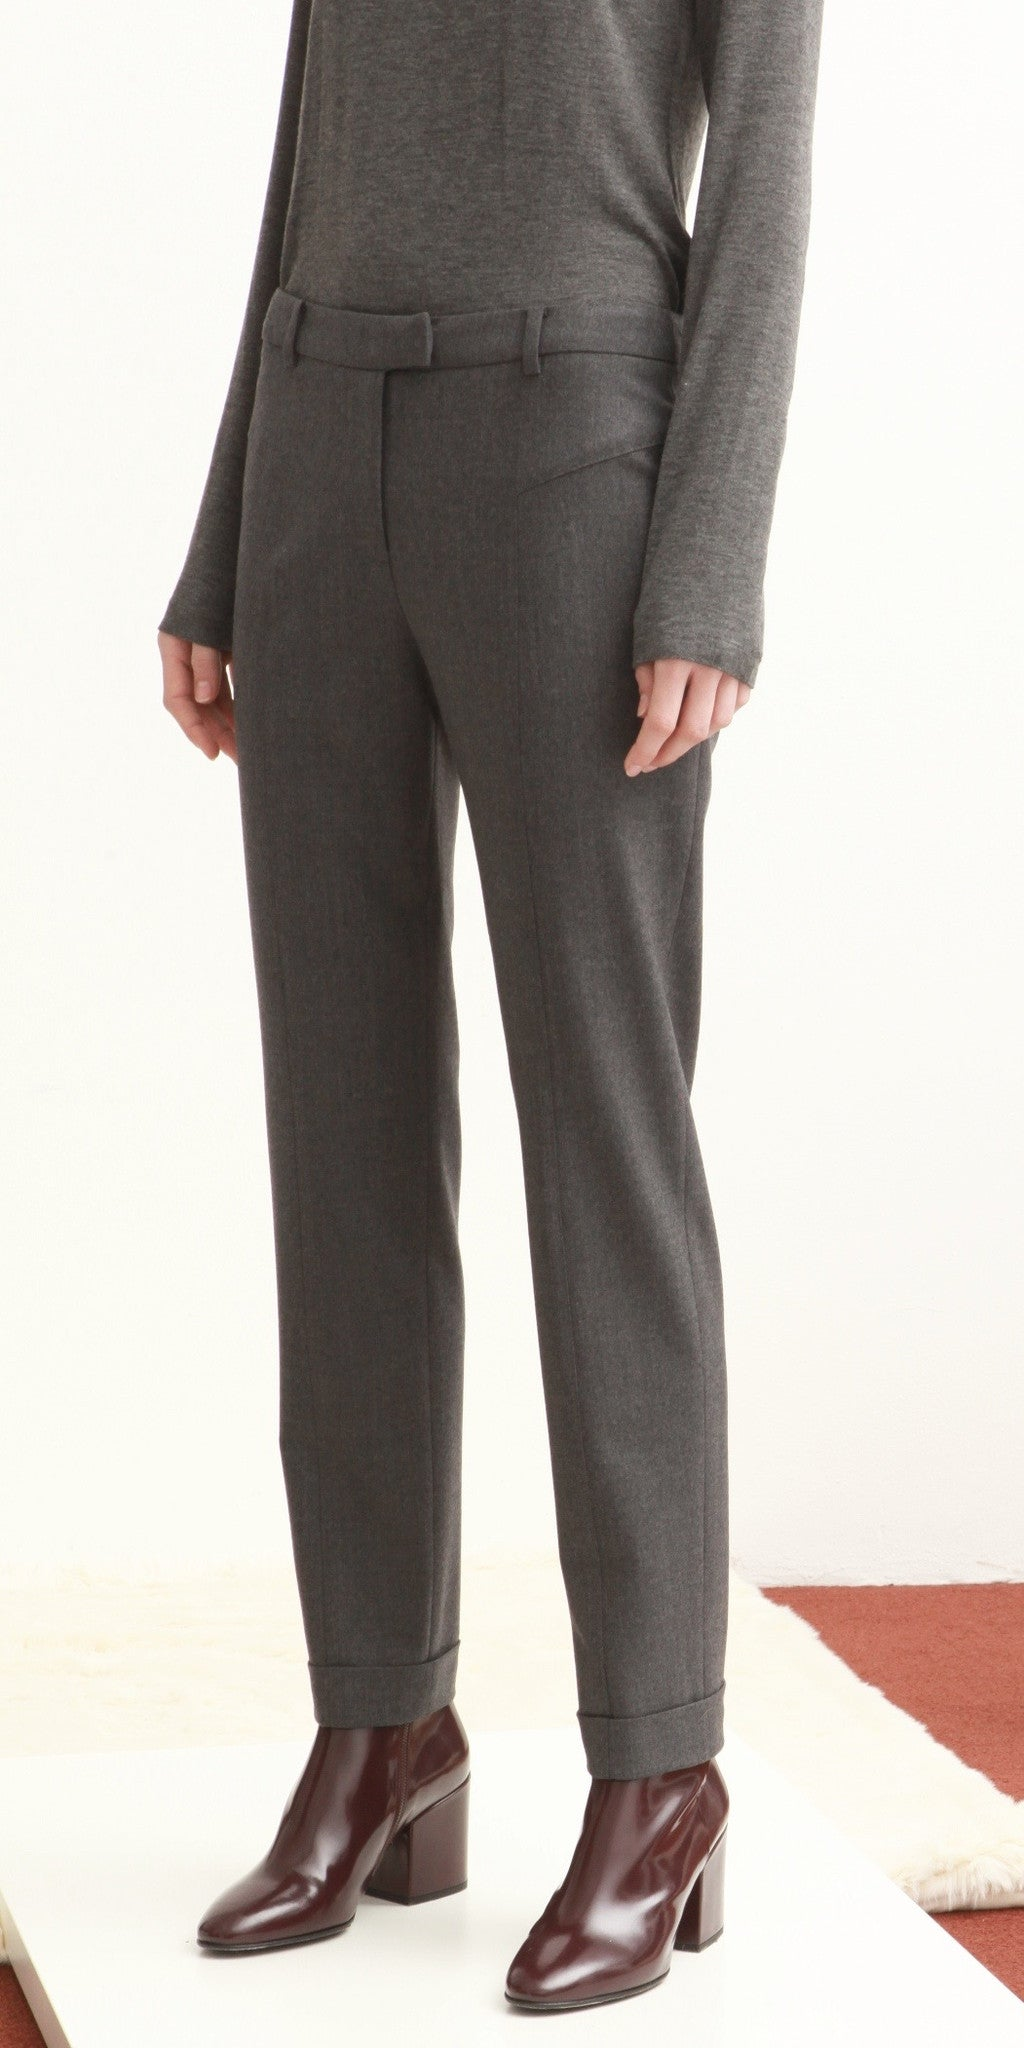 Cuffed Ankle Trouser